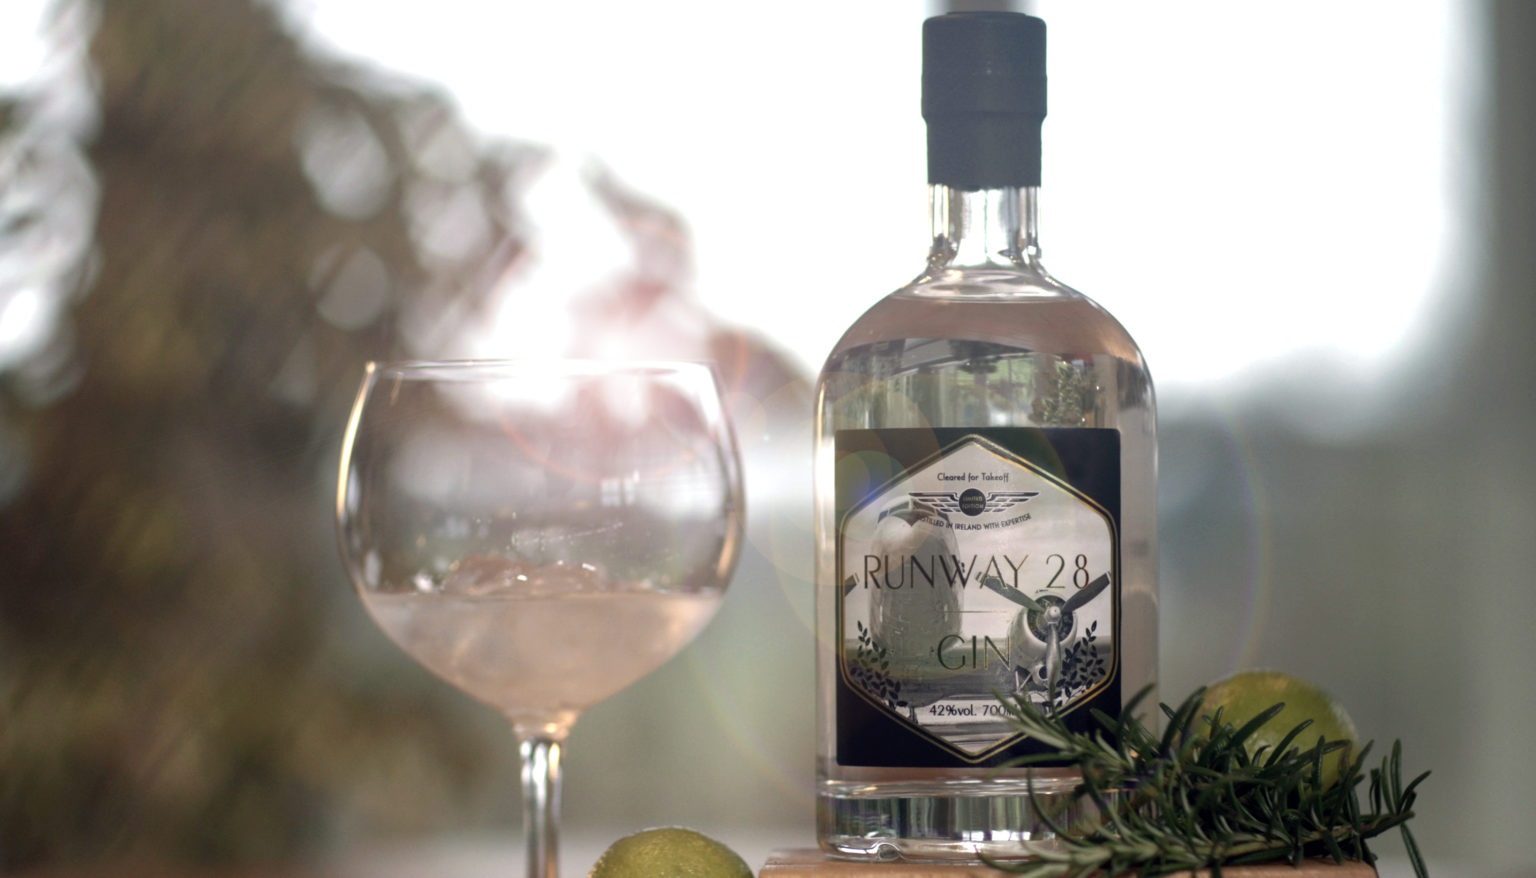 Win one of the first bottles of Runway28 Premium Irish Gin